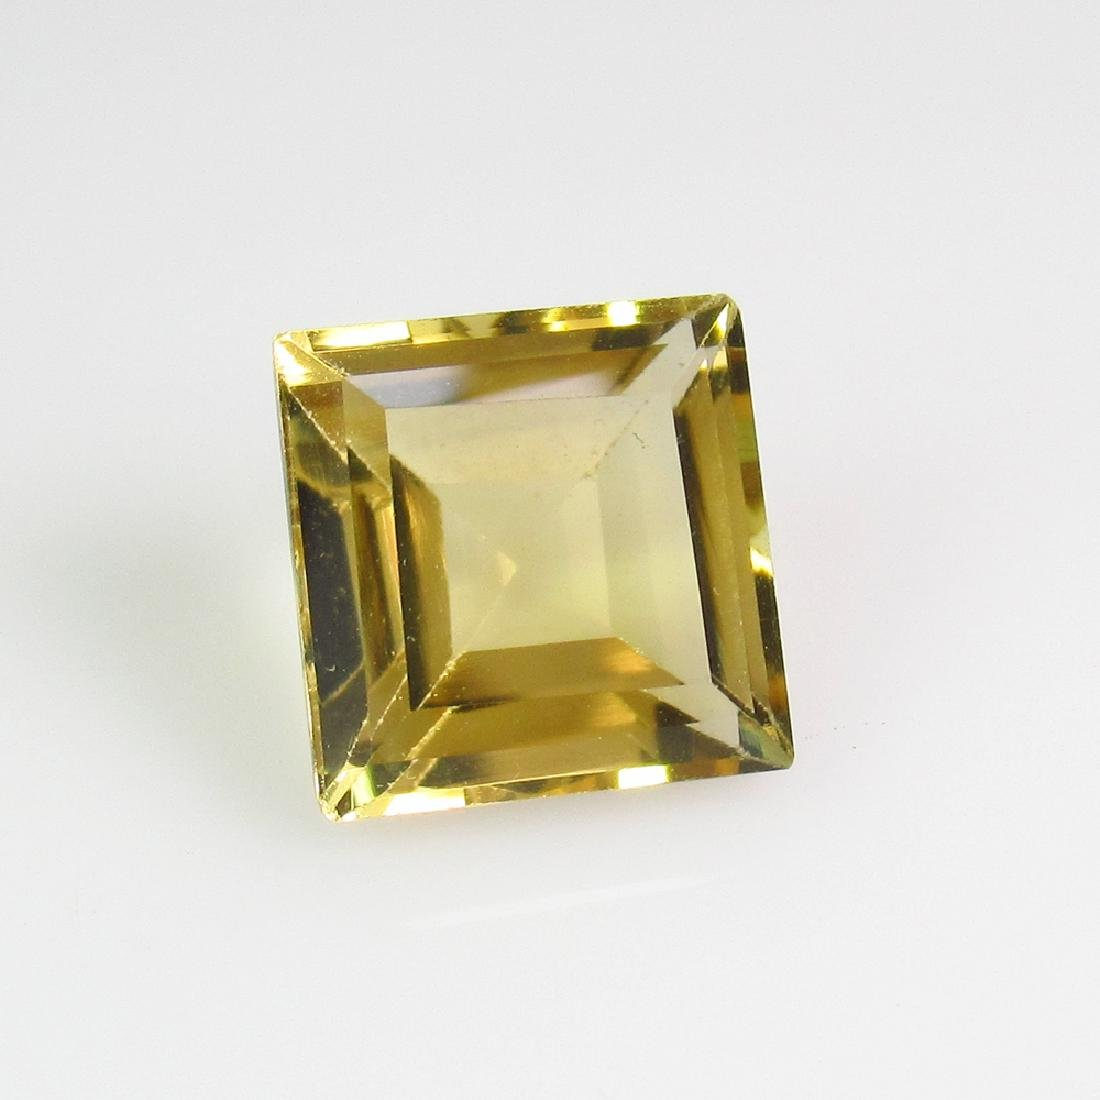 3.36 Ctw Natural Citrine 9X9 mm Square Cut